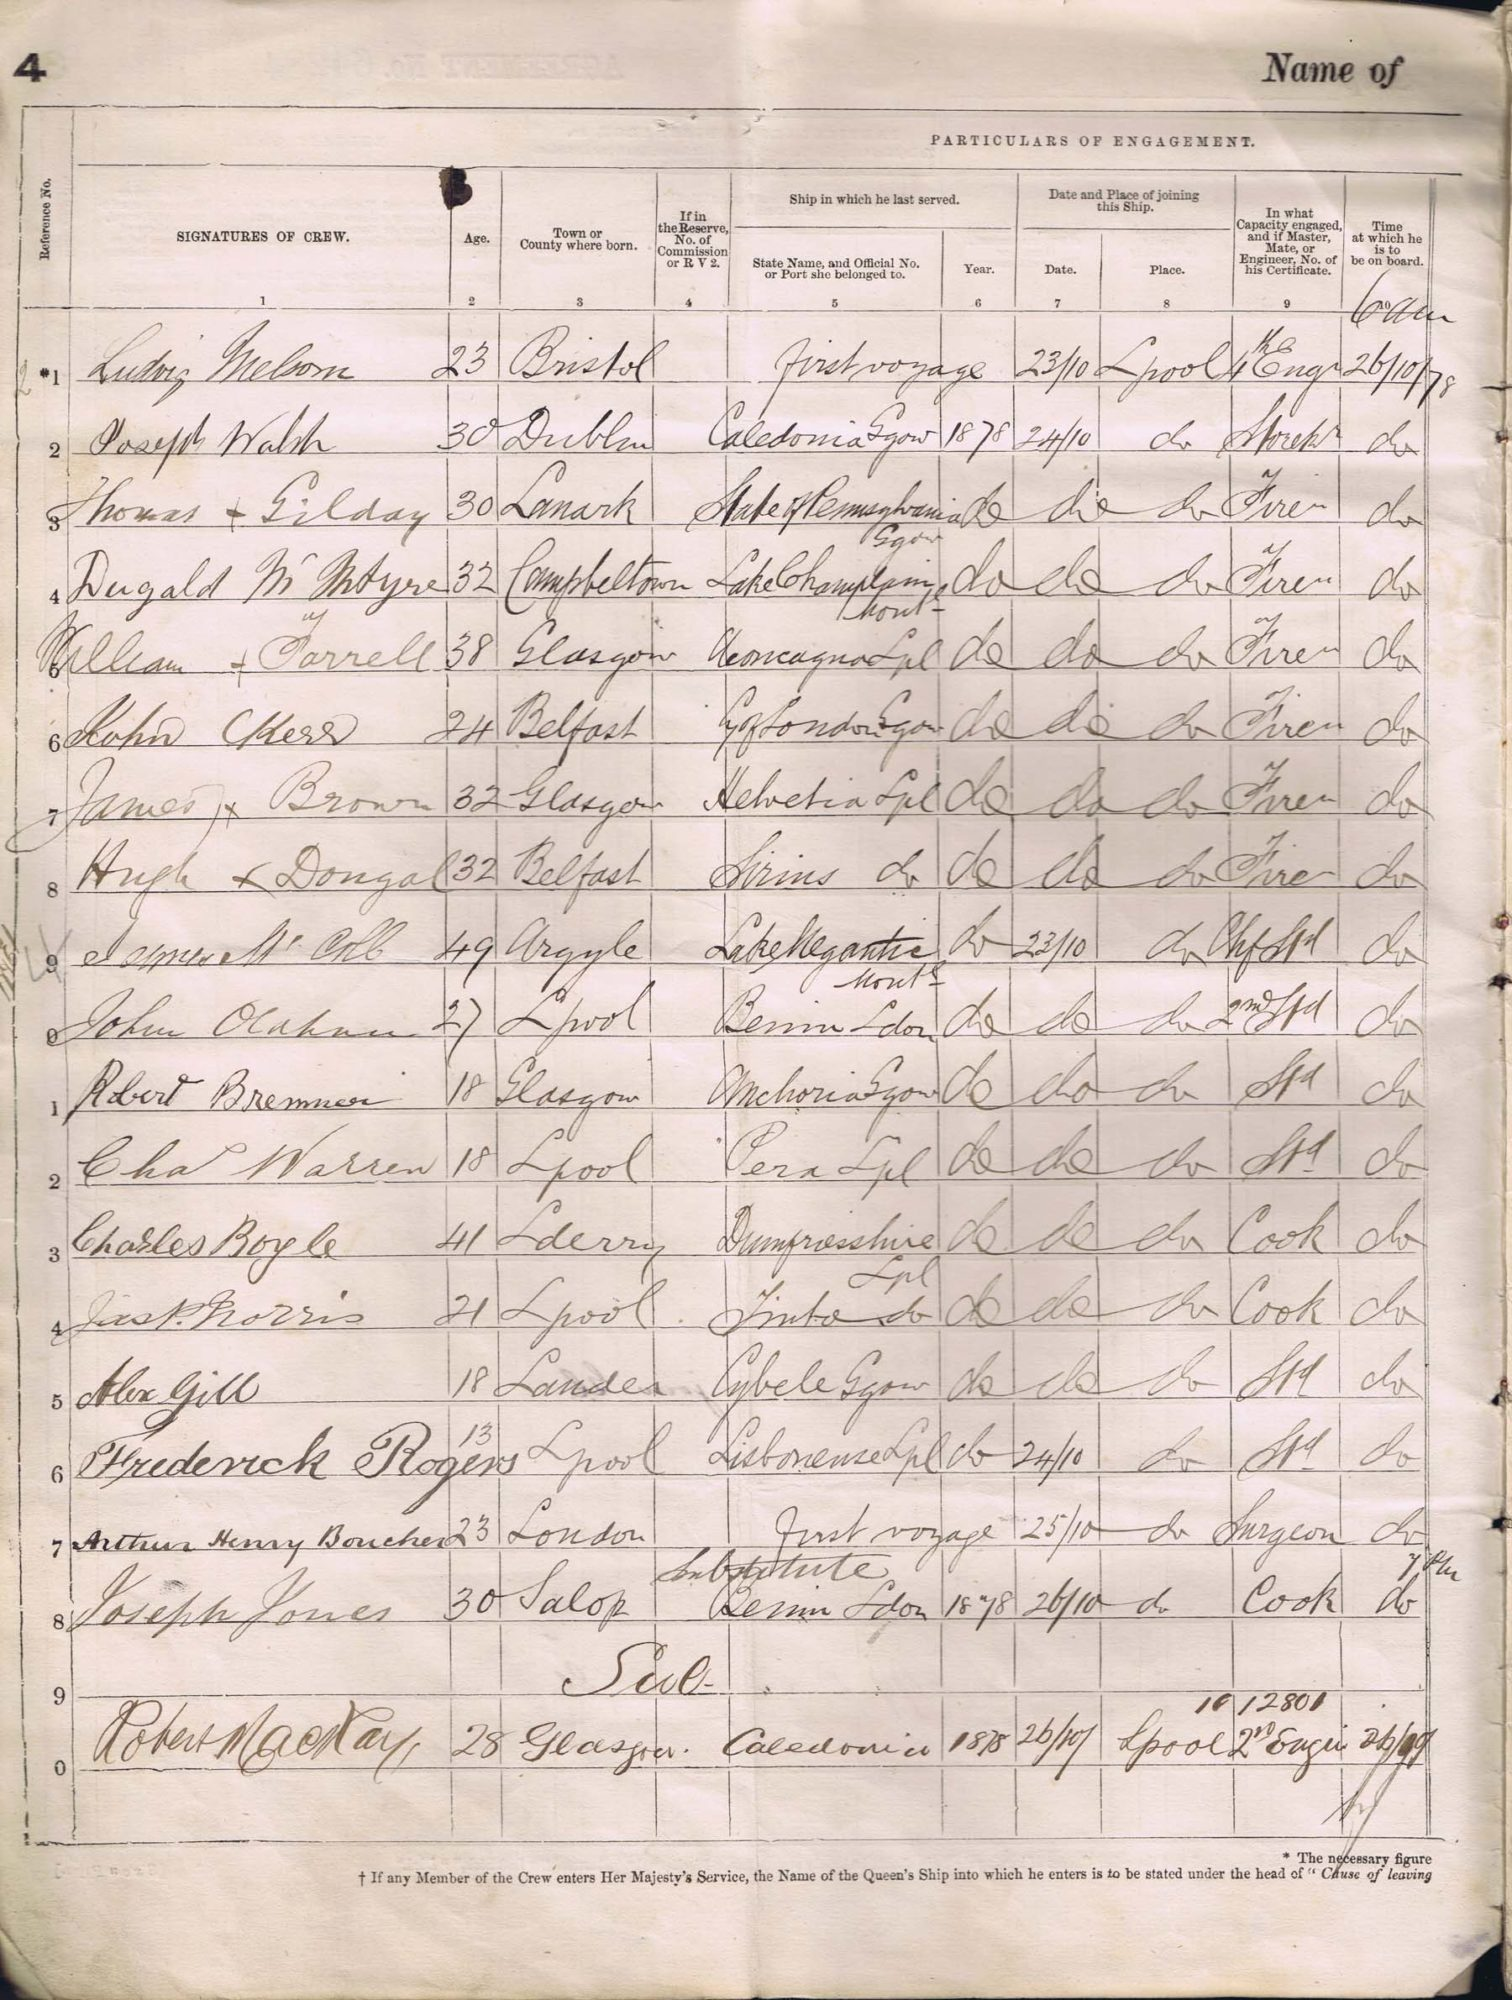 Digitised image of a page of the Agreement and Account of Crew for Clan Alpine in 1878